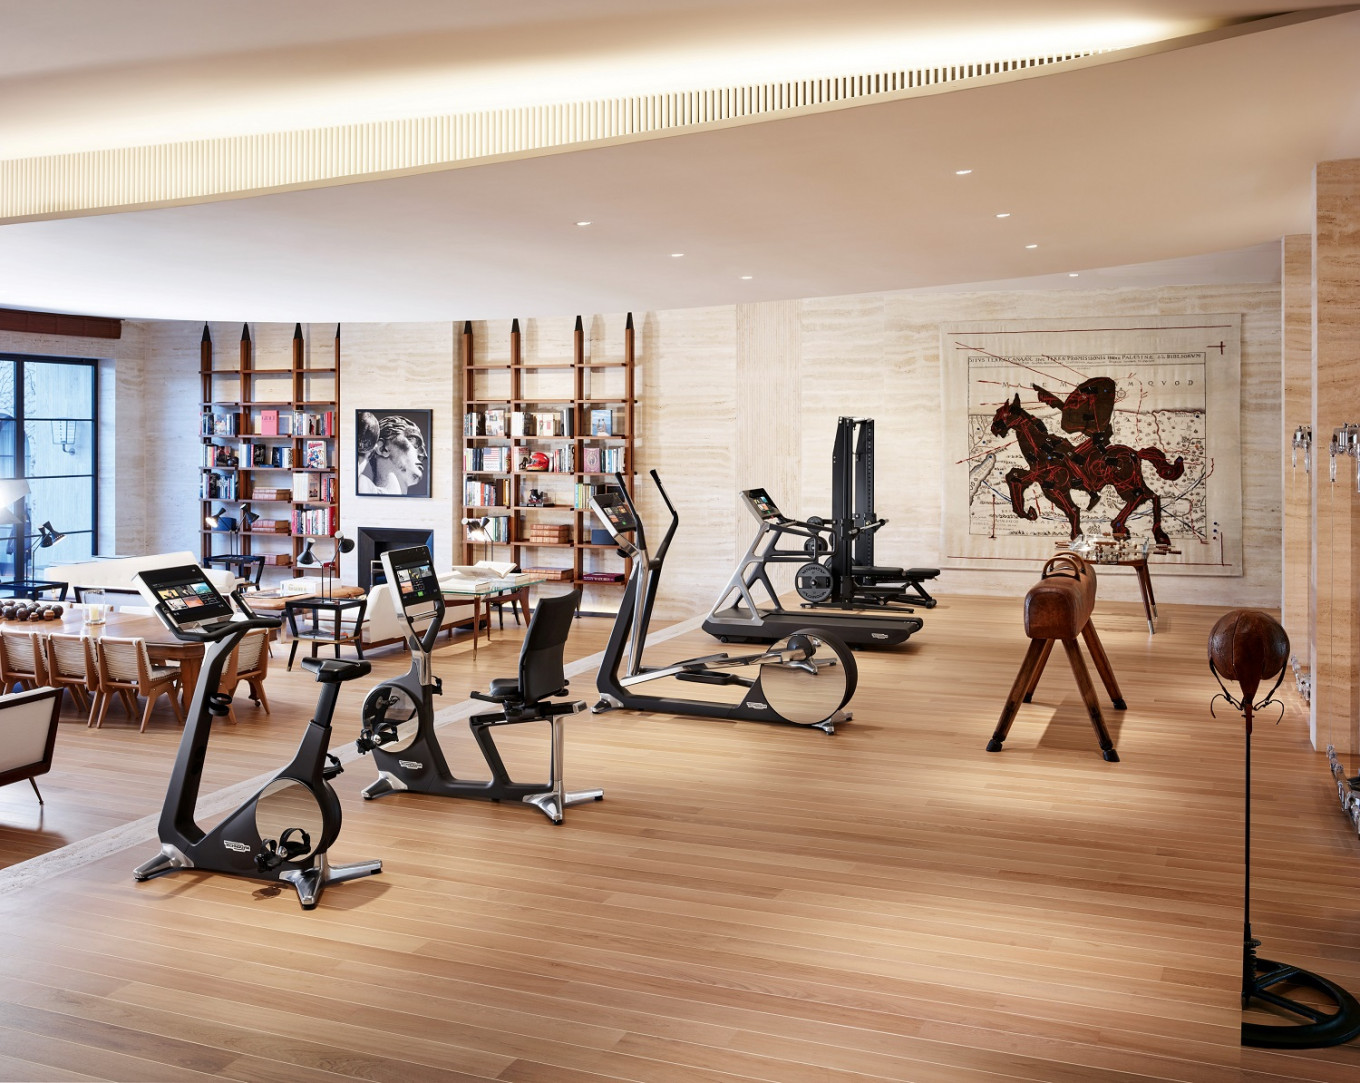 Technogym bets on home fitness boom as virus empties gyms